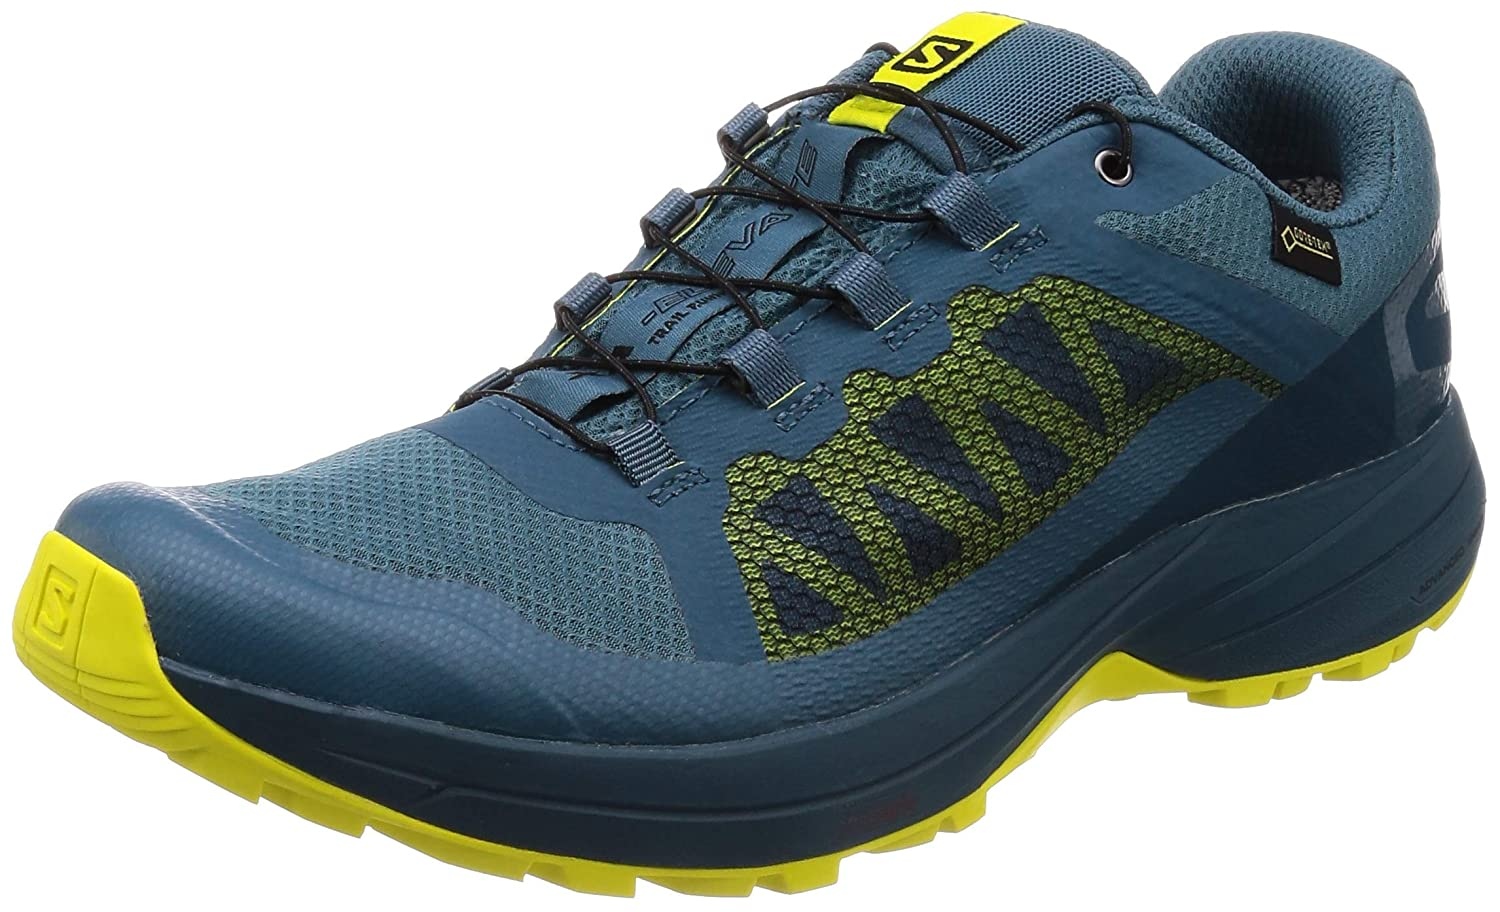 b5d97f13 Salomon XA Elevate Gore-TEX Trail Running Shoes - SS19: Amazon.co.uk ...